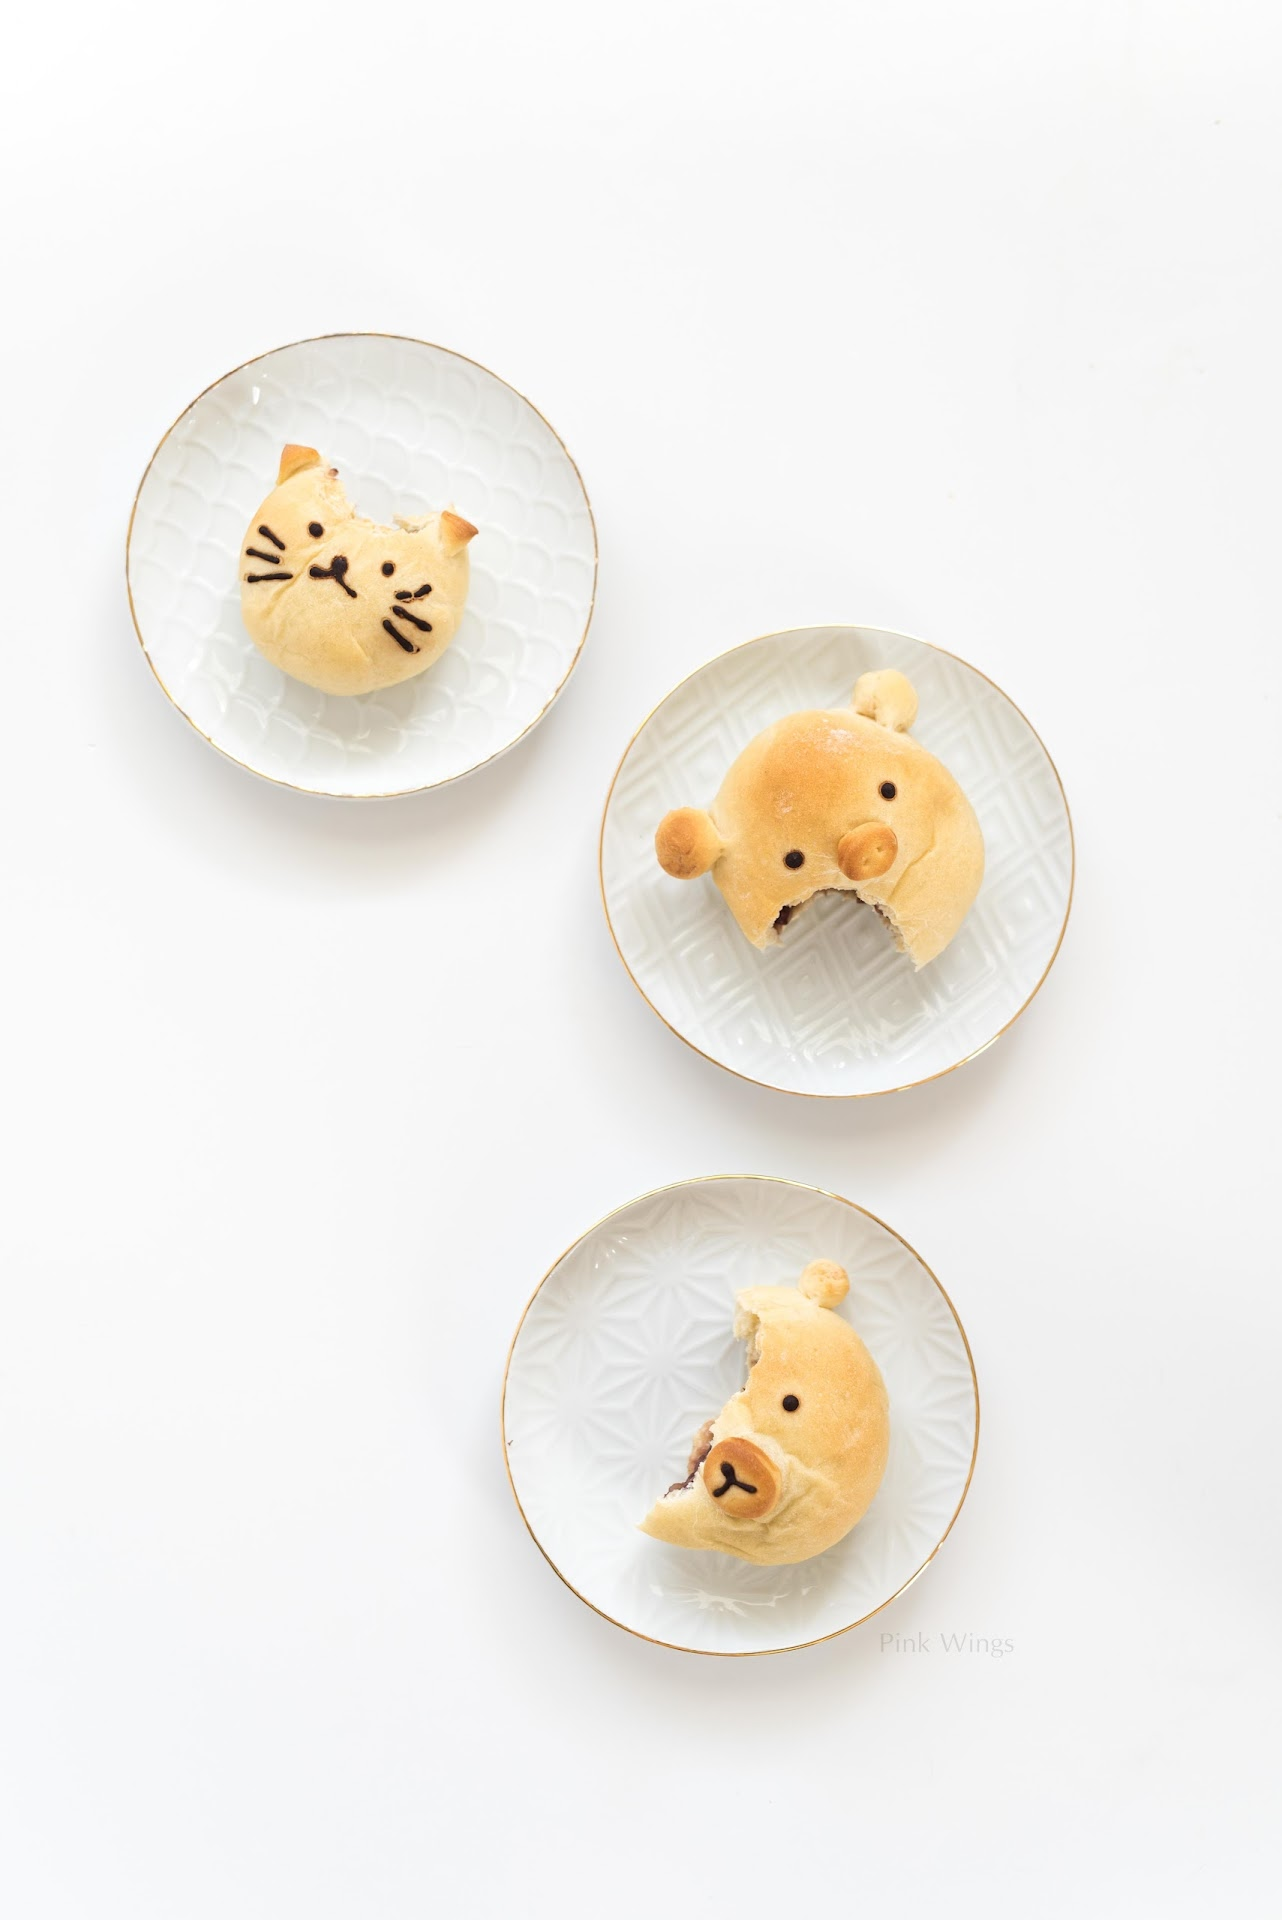 kawaii food recipes, animal bread, kids party food ideas, bear, cat, pig, themed parties